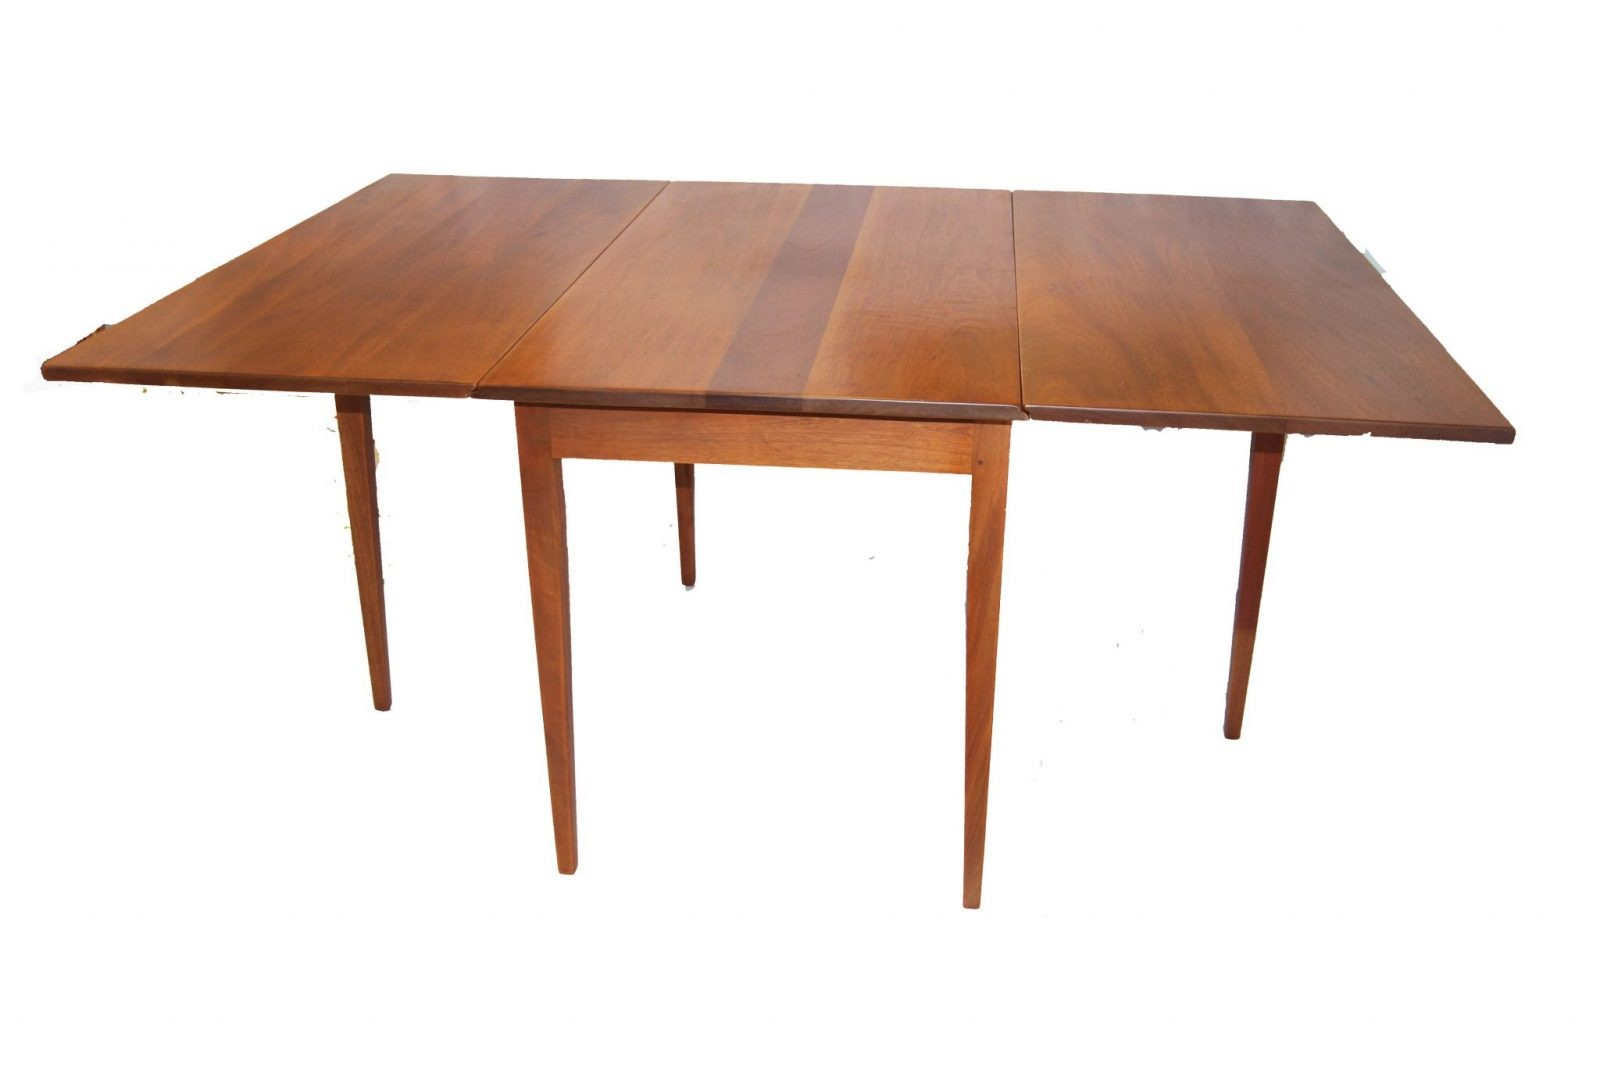 A Federal Style Mahogany Drop Leaf Table